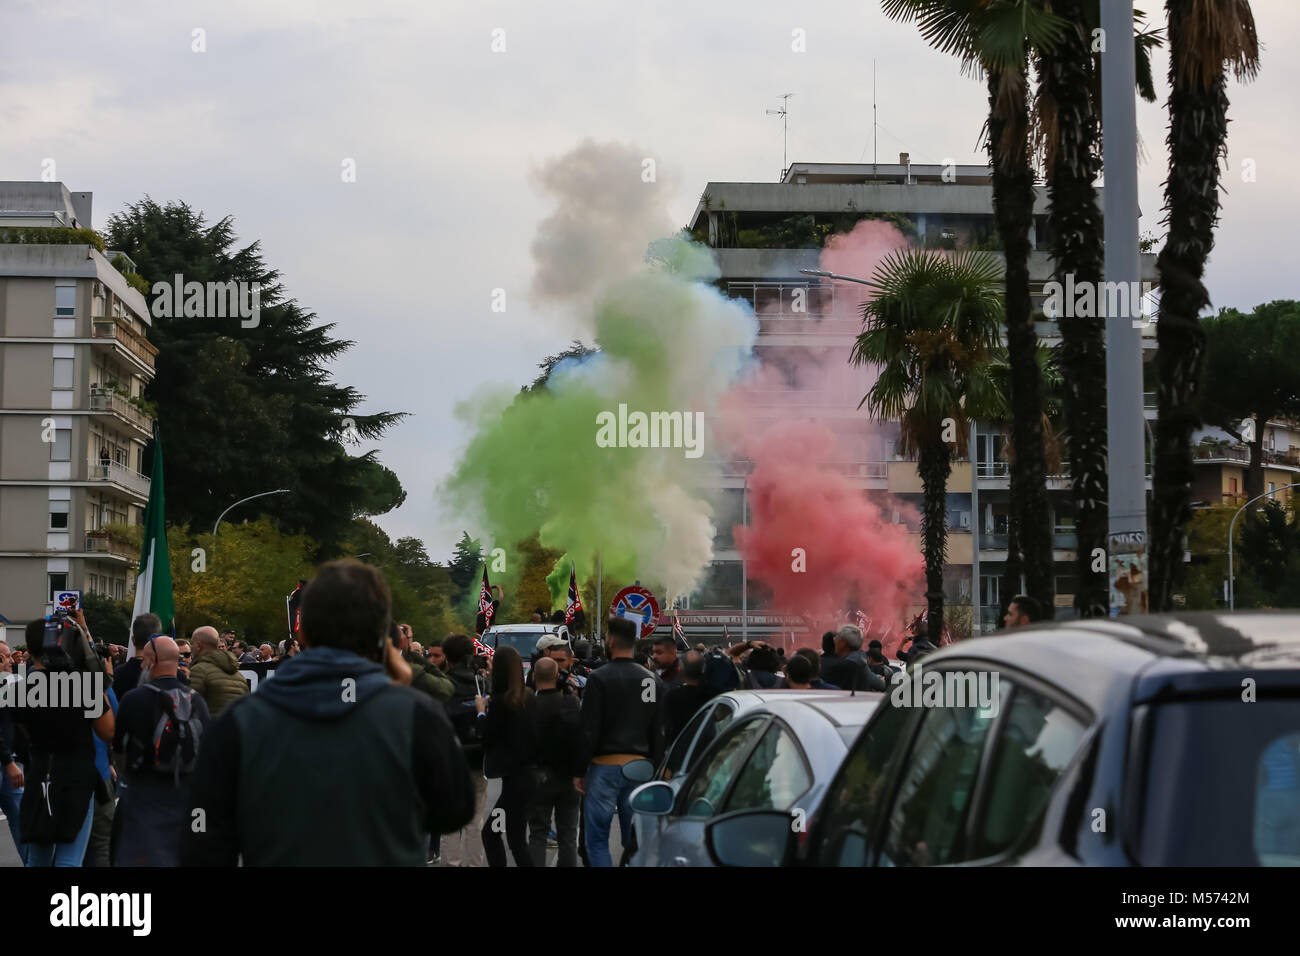 Rome, Italy 4 November 2017. Demonstration of the political movement called 'Forza Nuova' held in Rome in - Stock Image